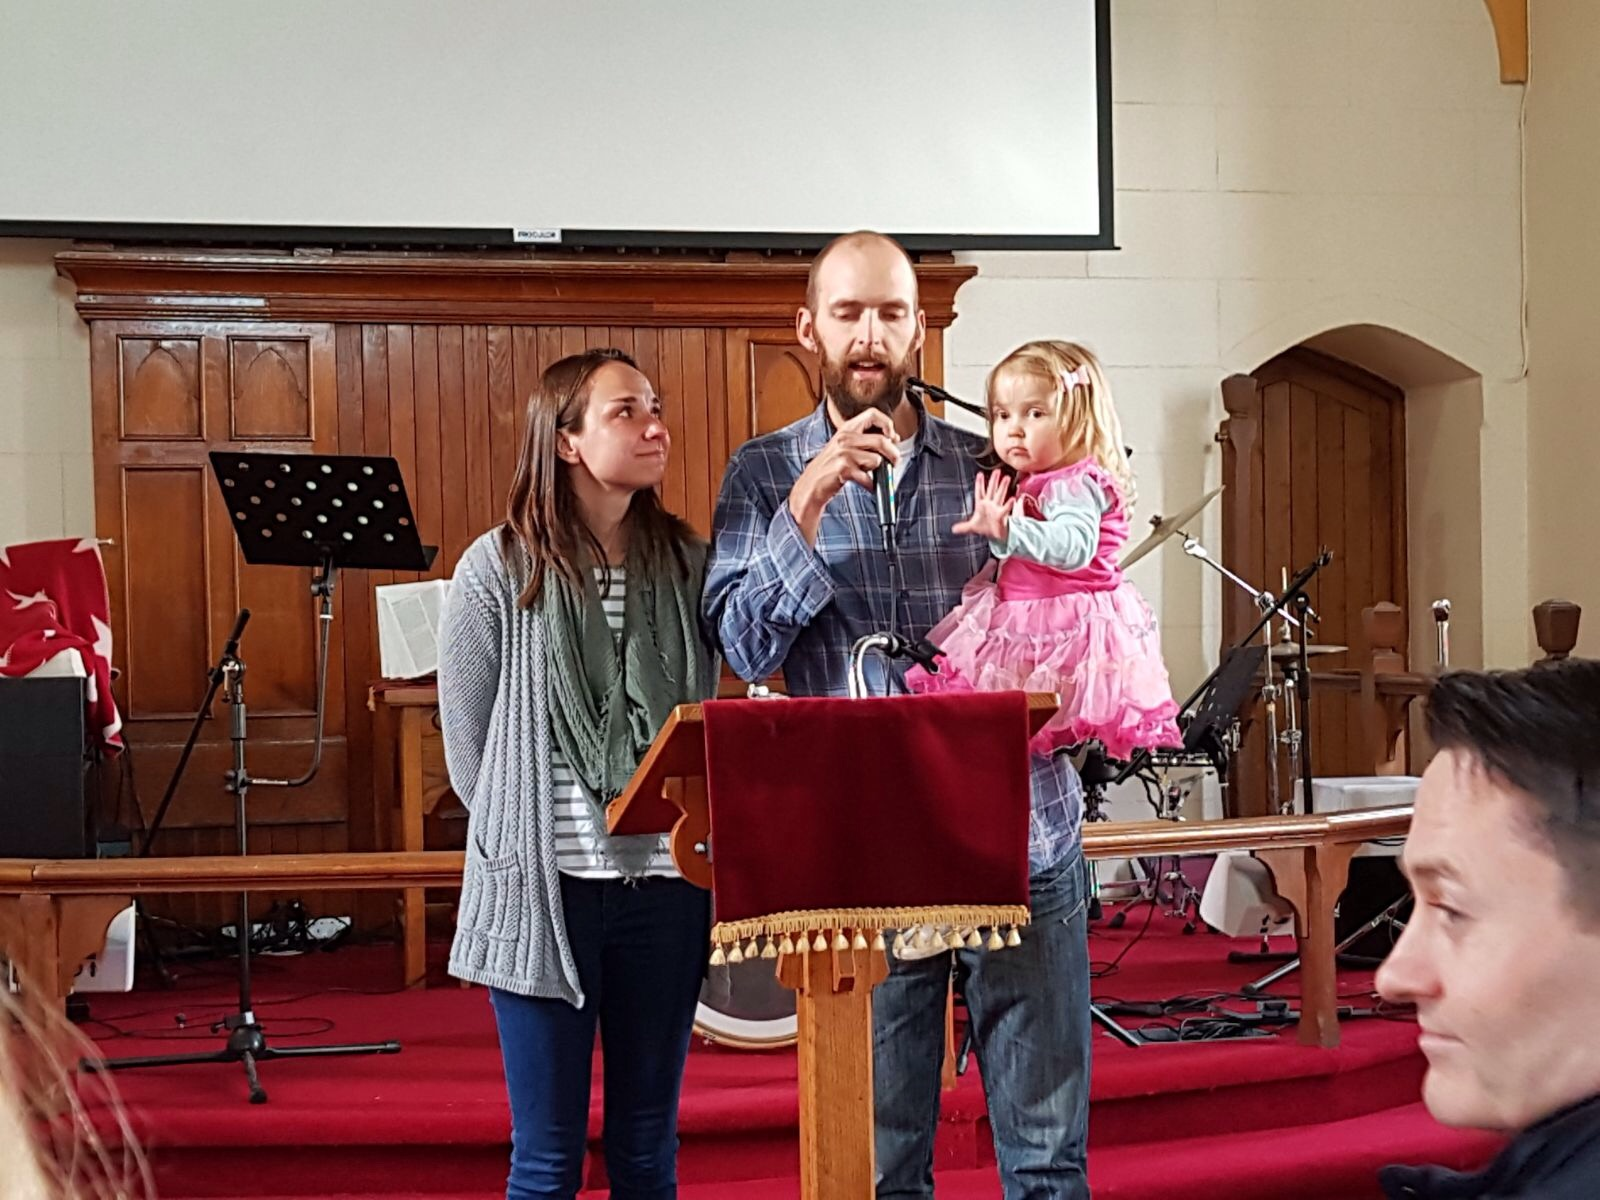 Speaking at our home church in Bray, Dublin